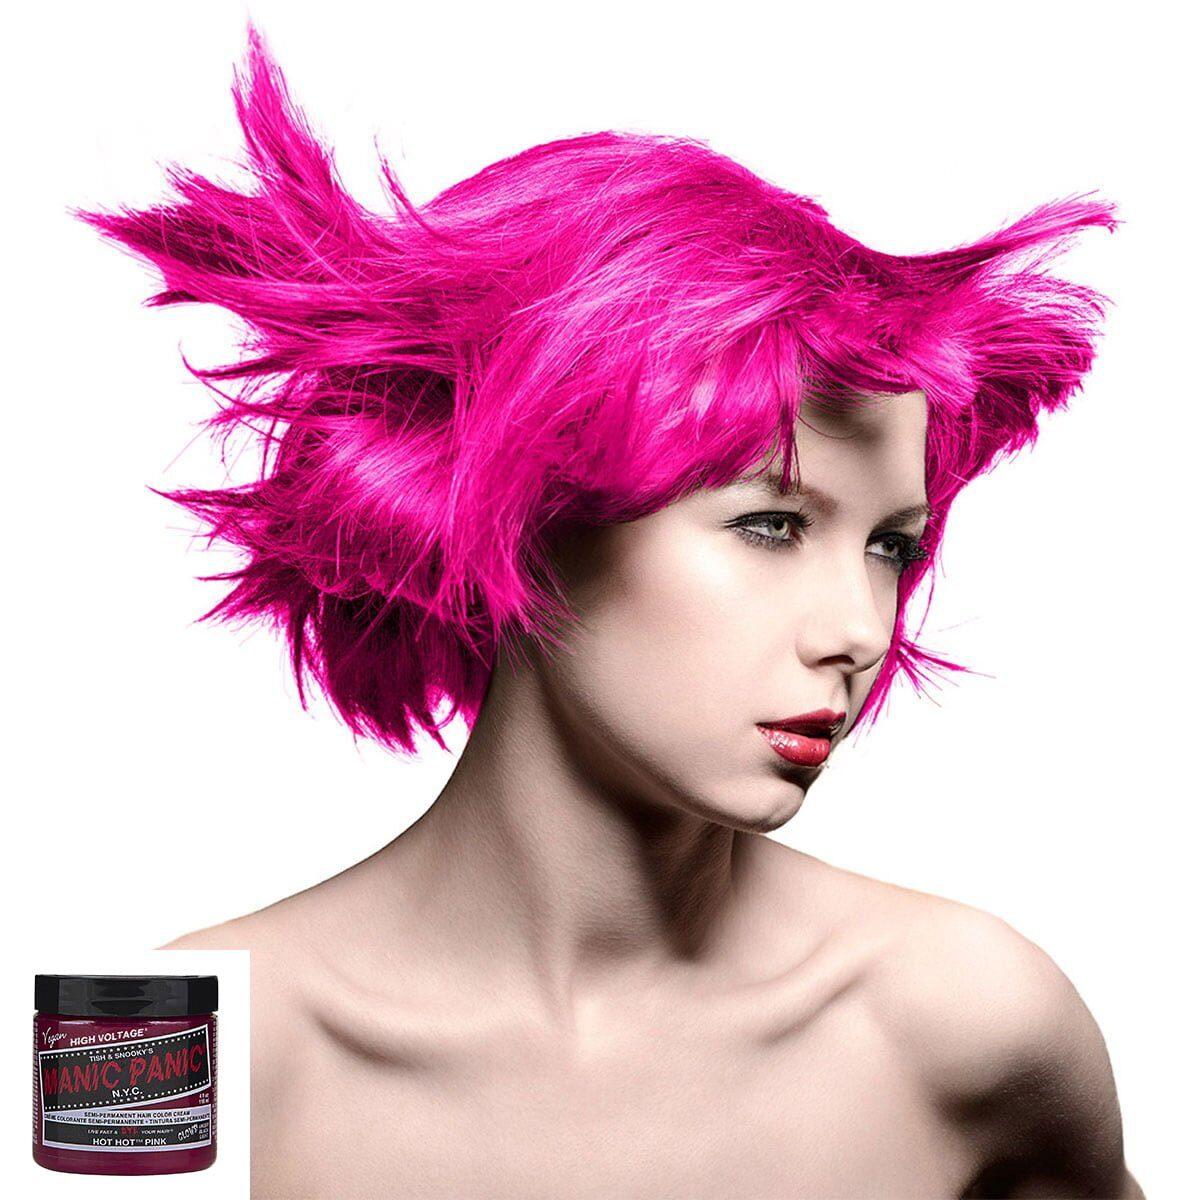 manic panic high voltage rosa uv hårfarge 118 ml hot hot pink classic model 70424